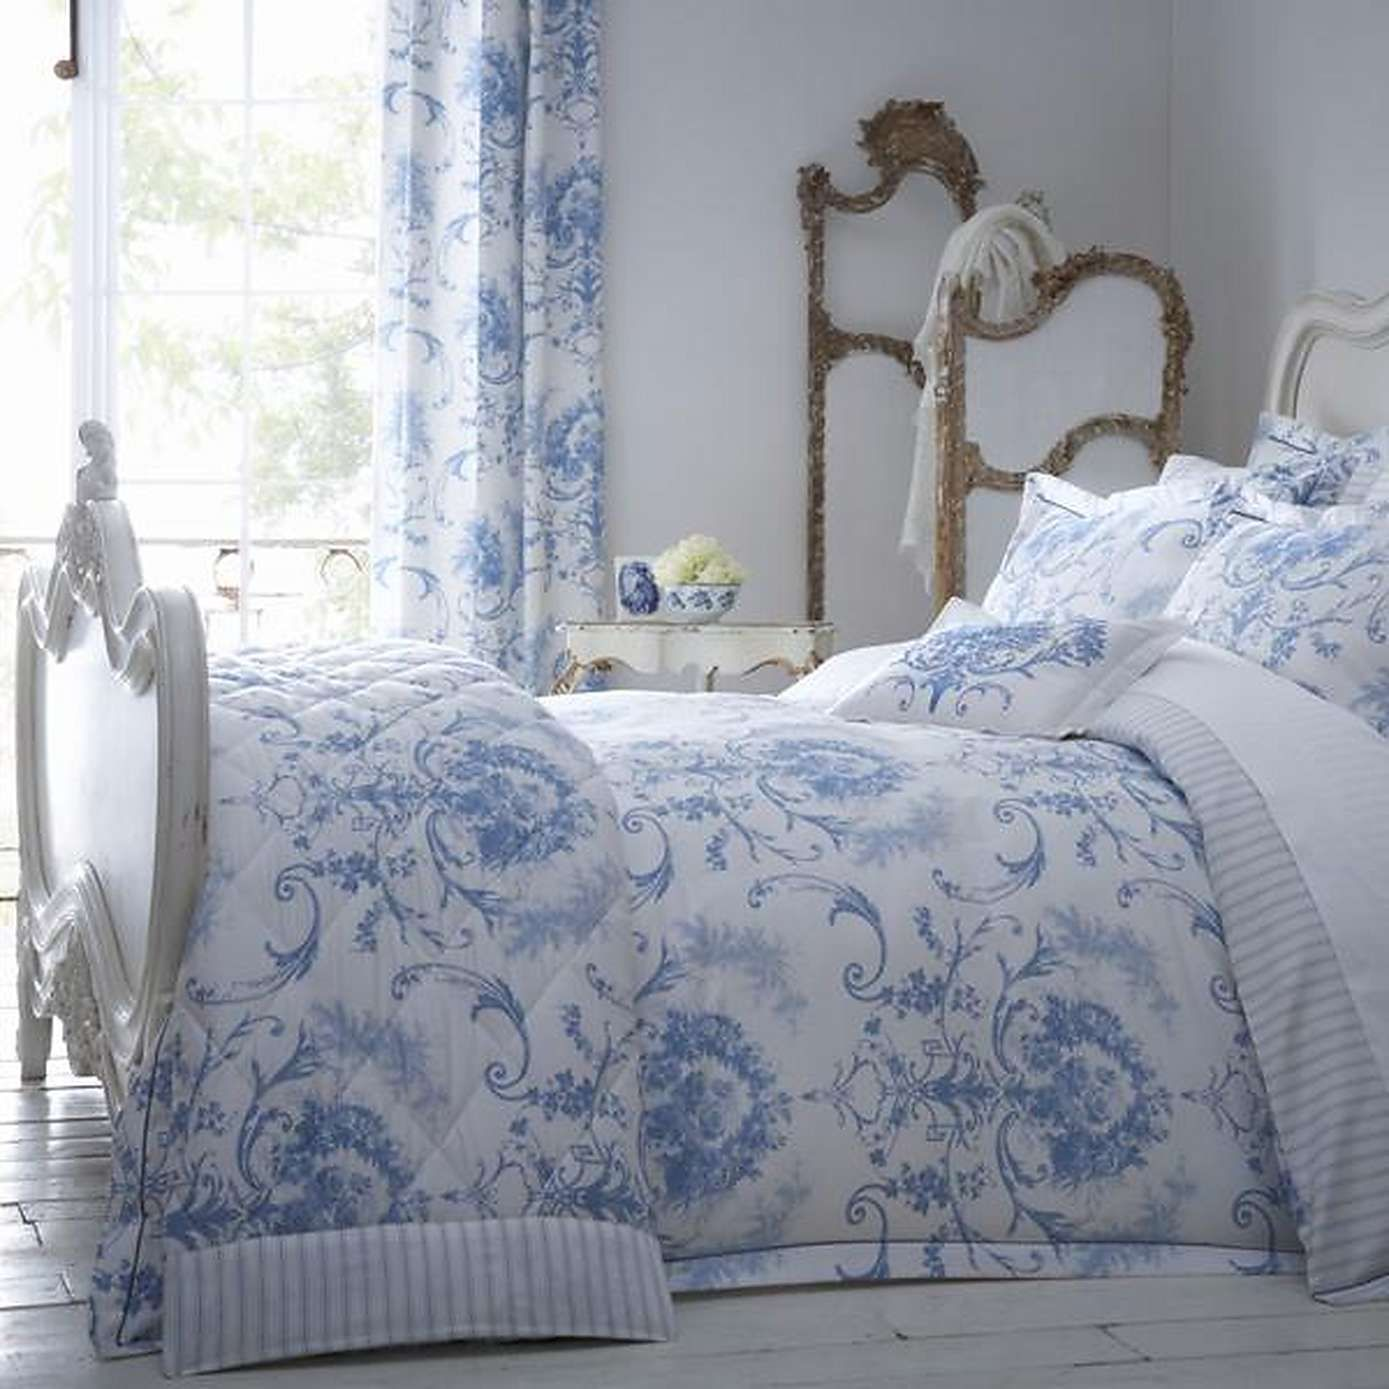 Dorma Toile Blue Bed Linen Collection Dunelm Blue Linen